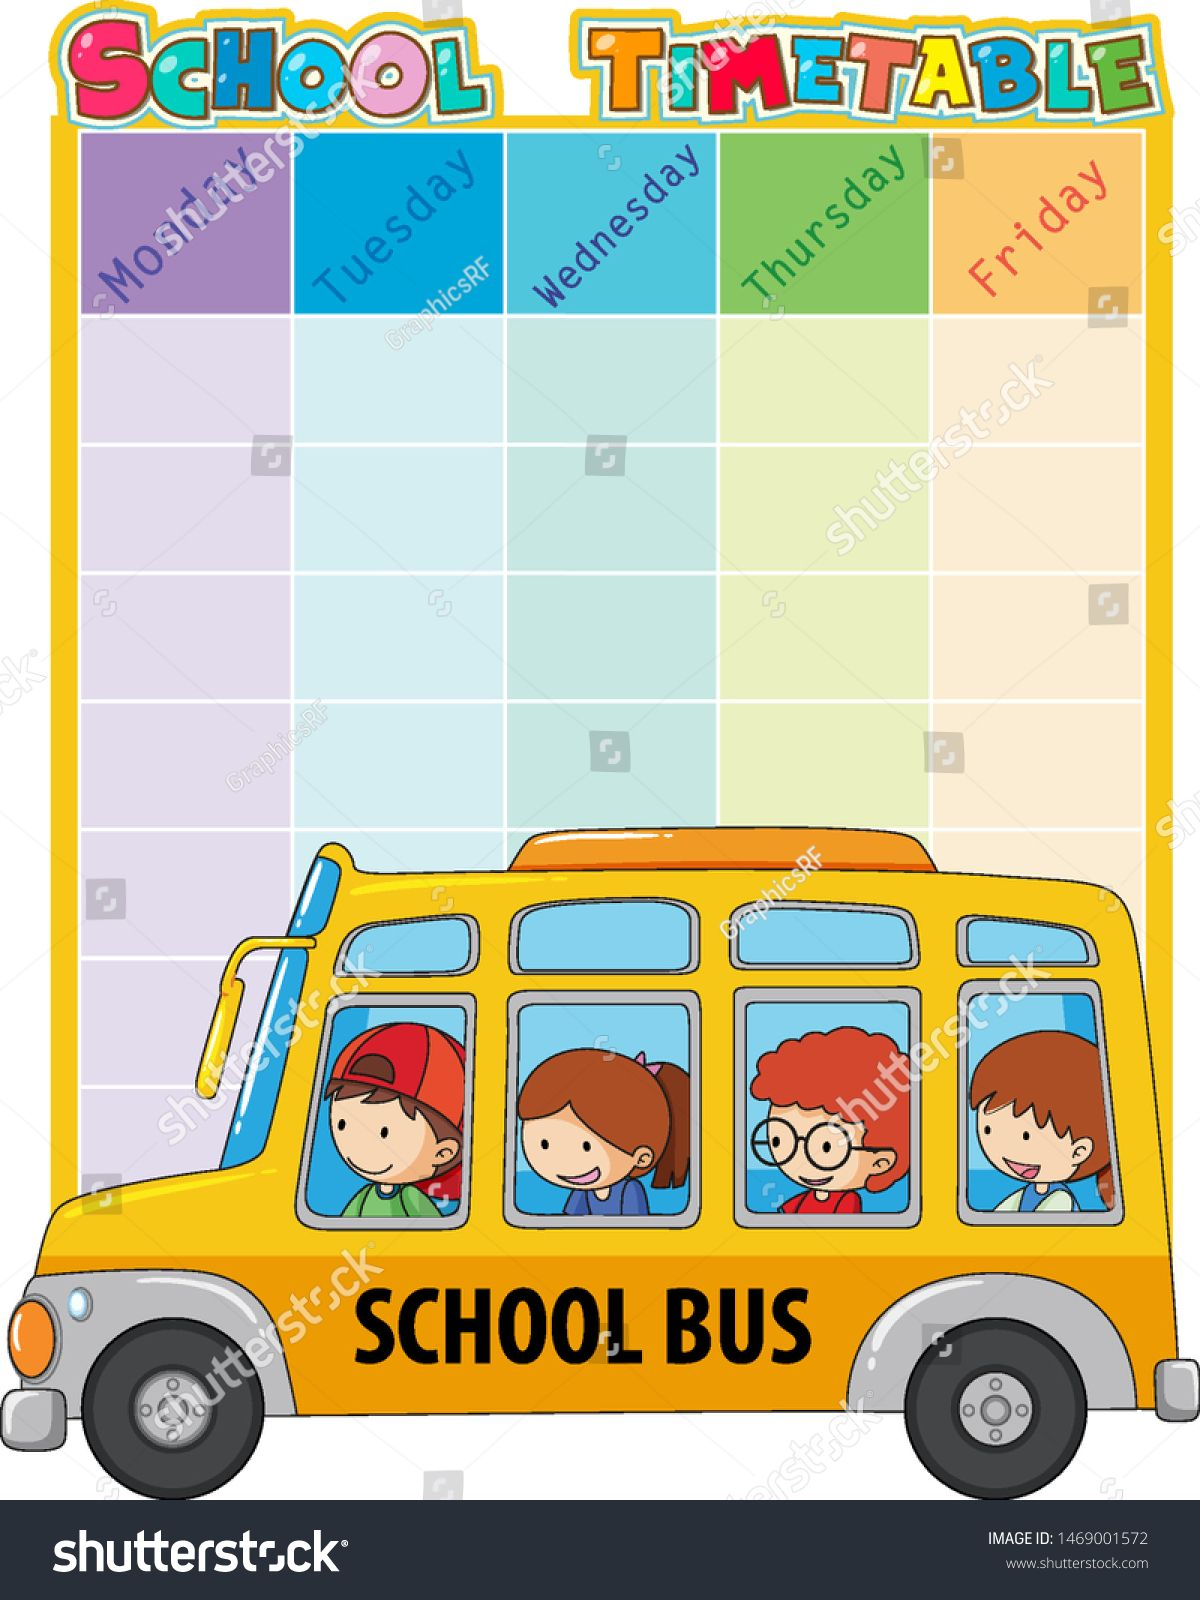 School Timetable Template With Bus And Kids Illustration Ad